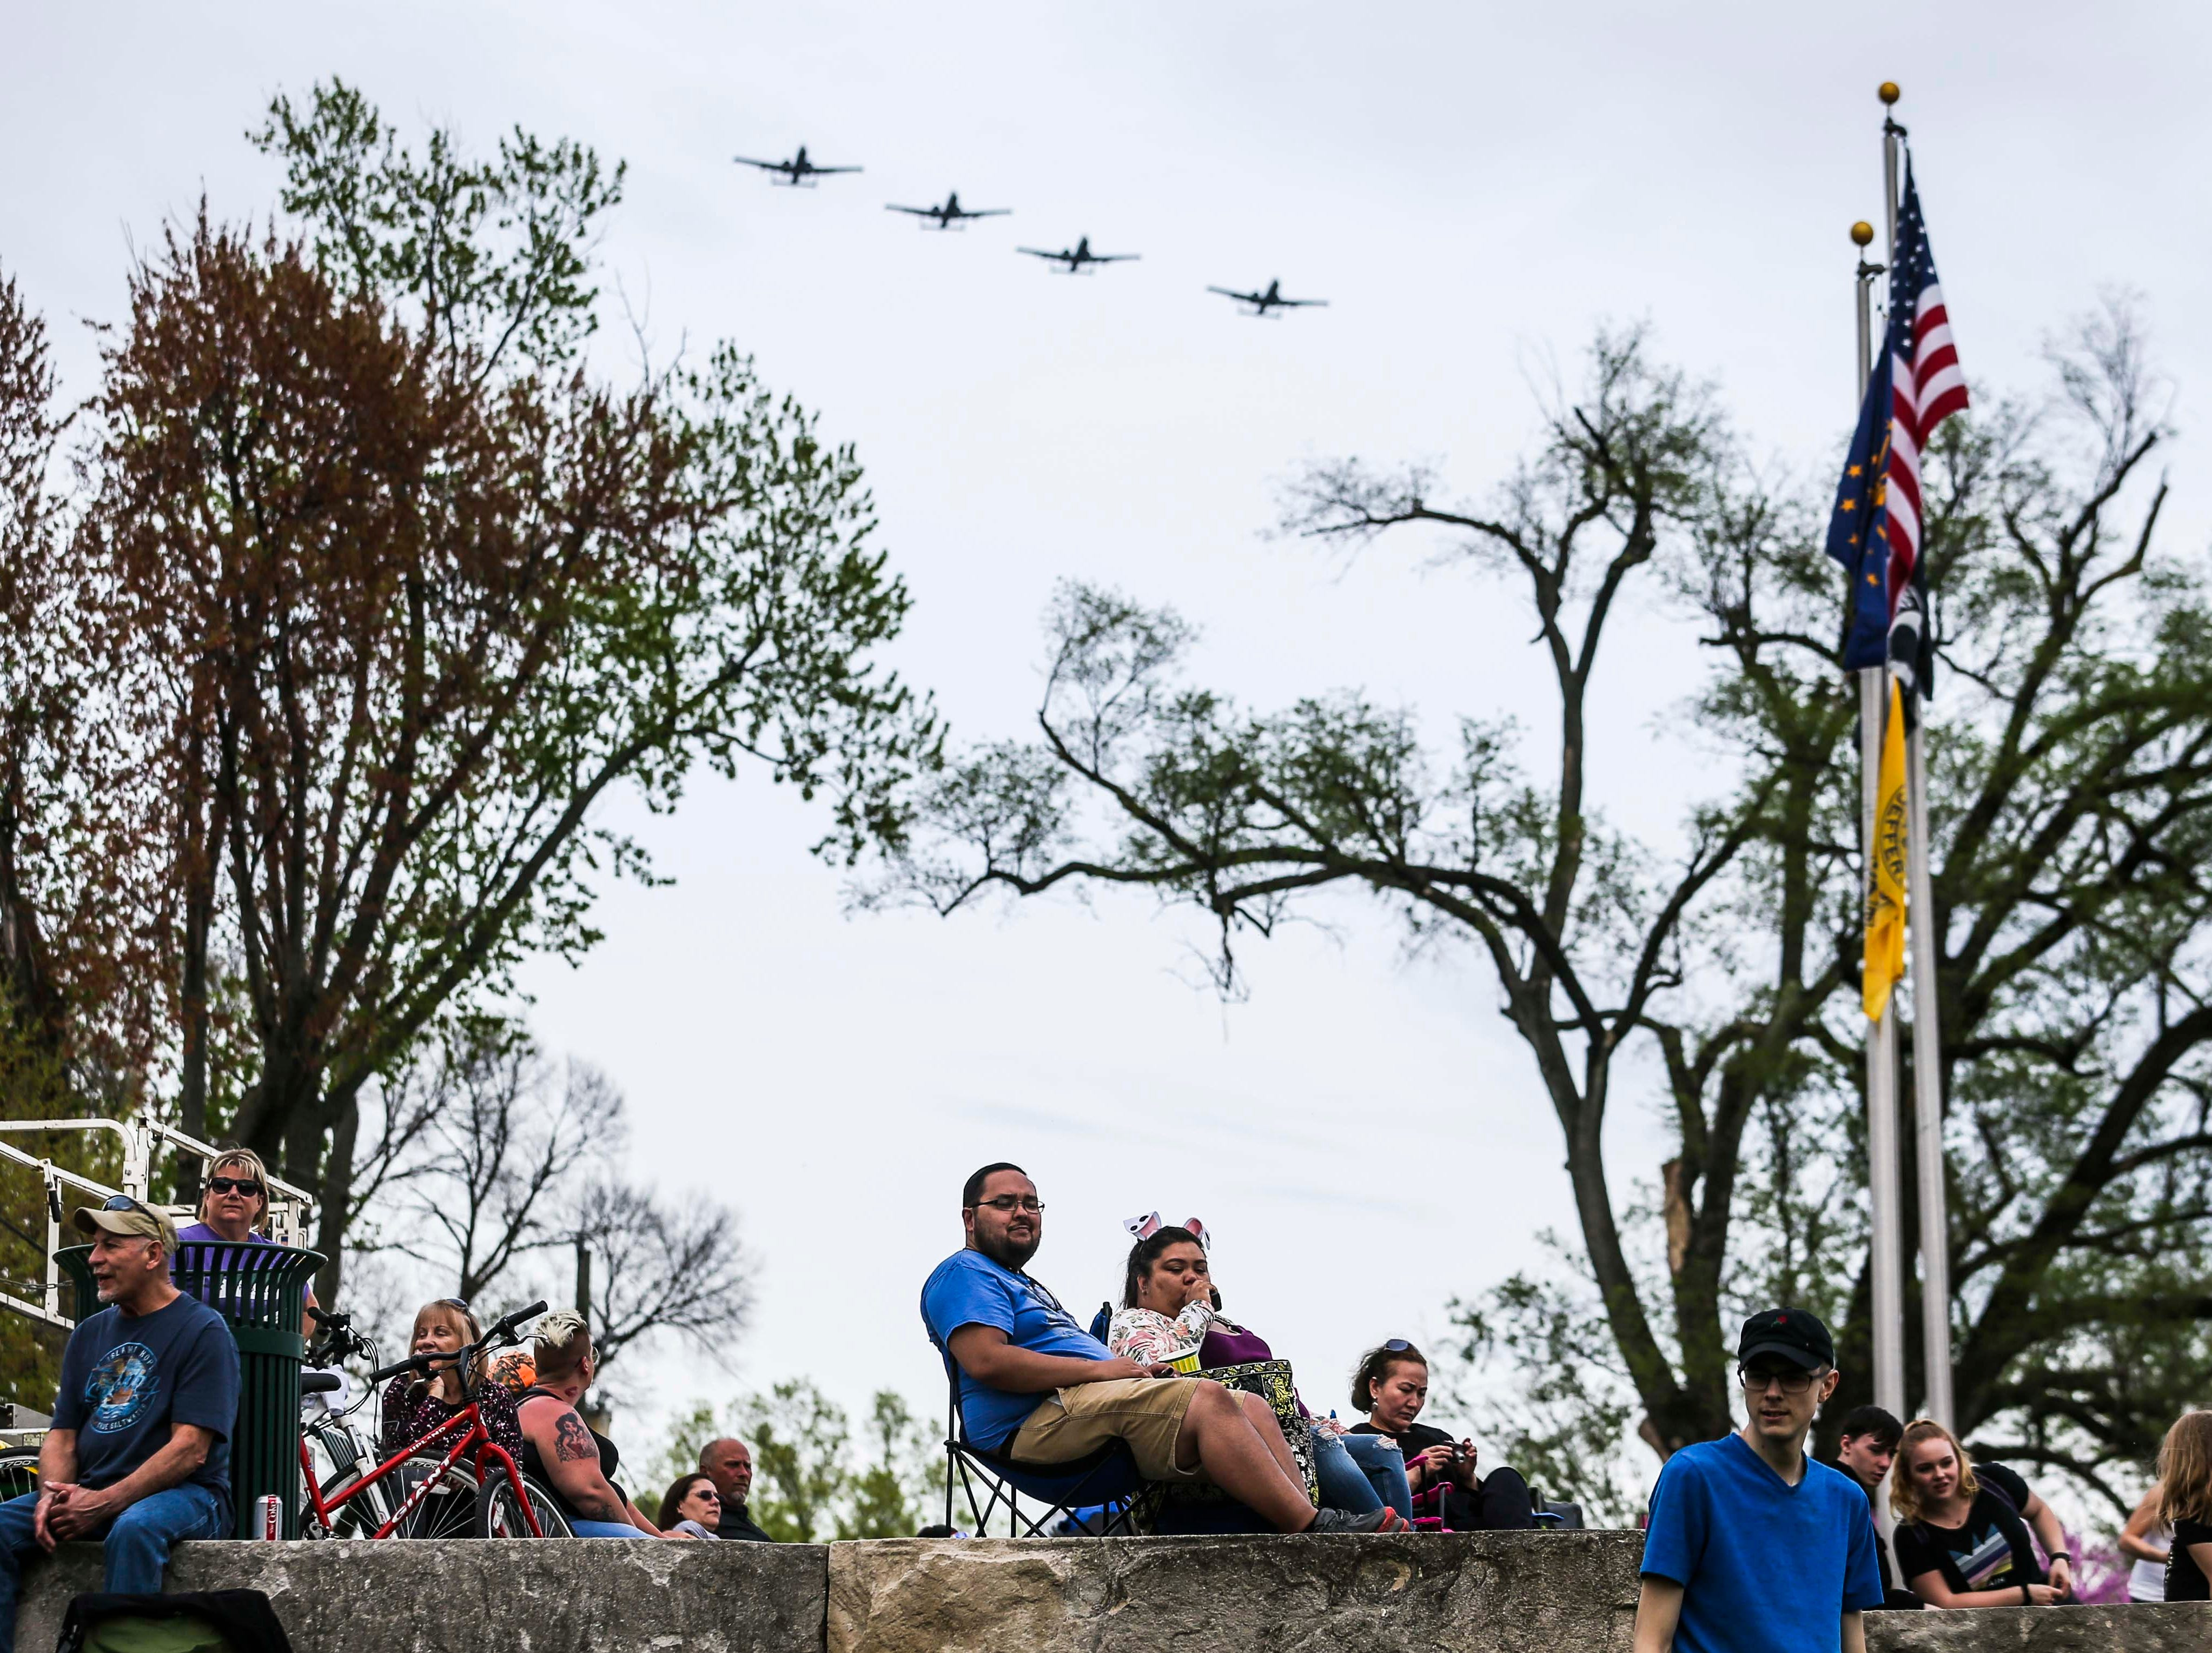 Scenes from the Jeffersonville during 2019 Thunder Over Louisville. April 13, 2019